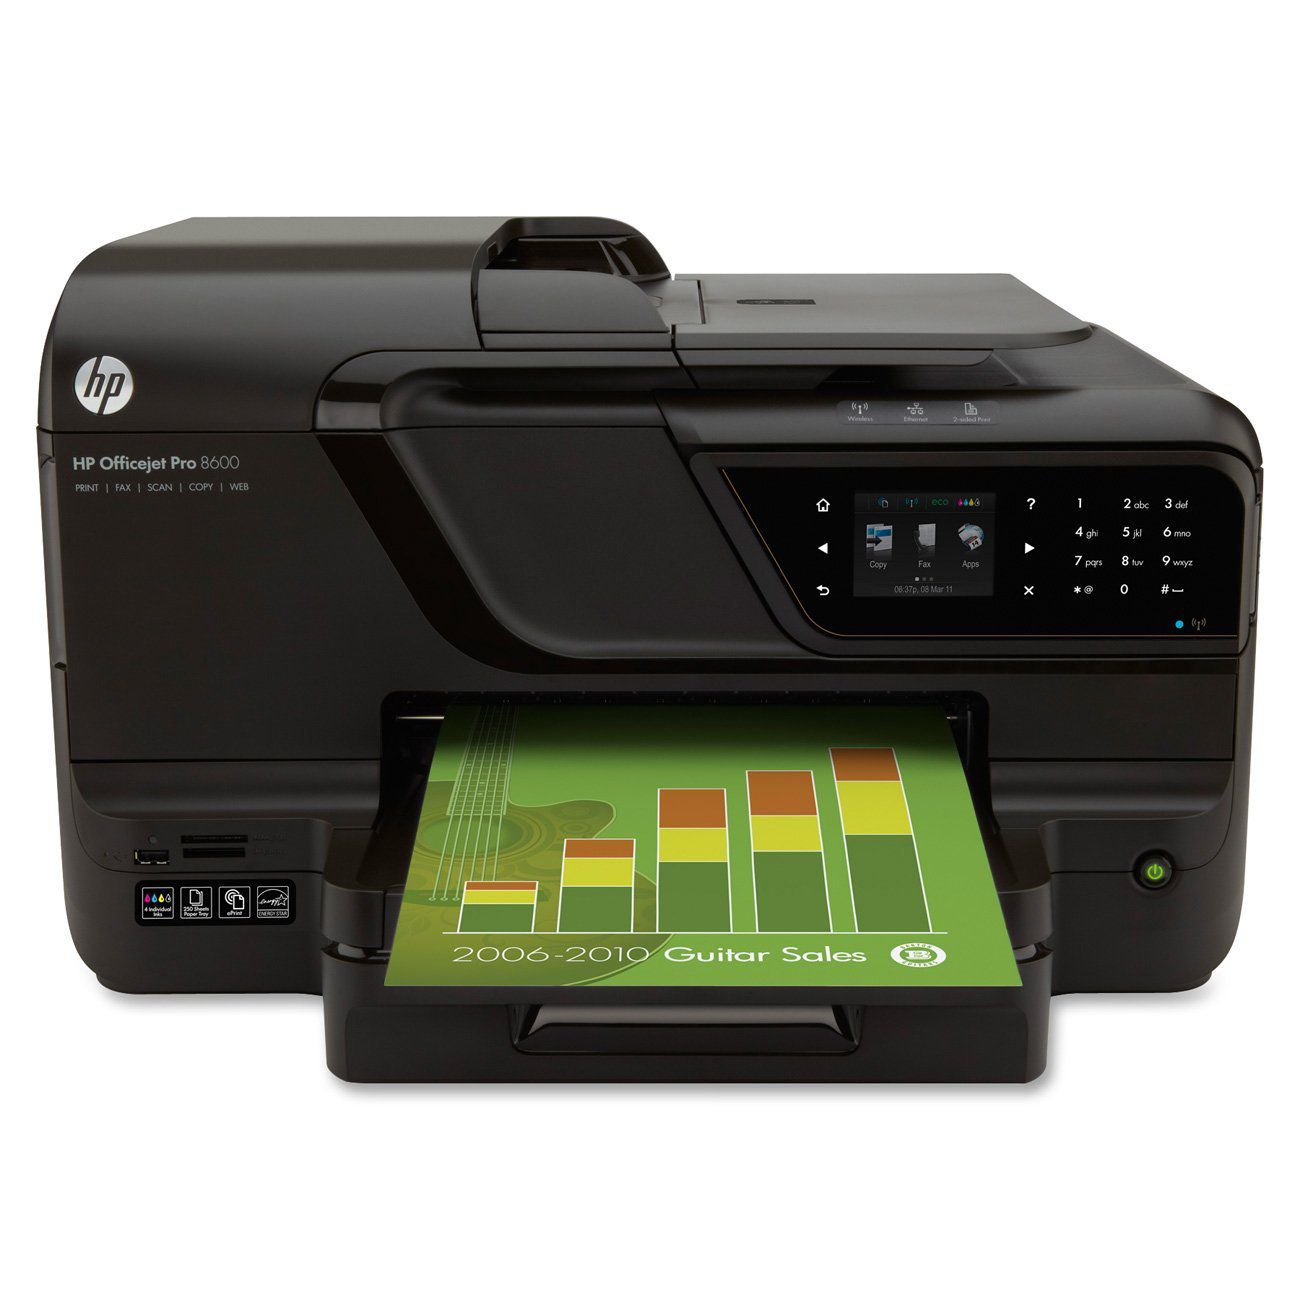 hp officejet pro 8600 e-all-in-one printer series manual